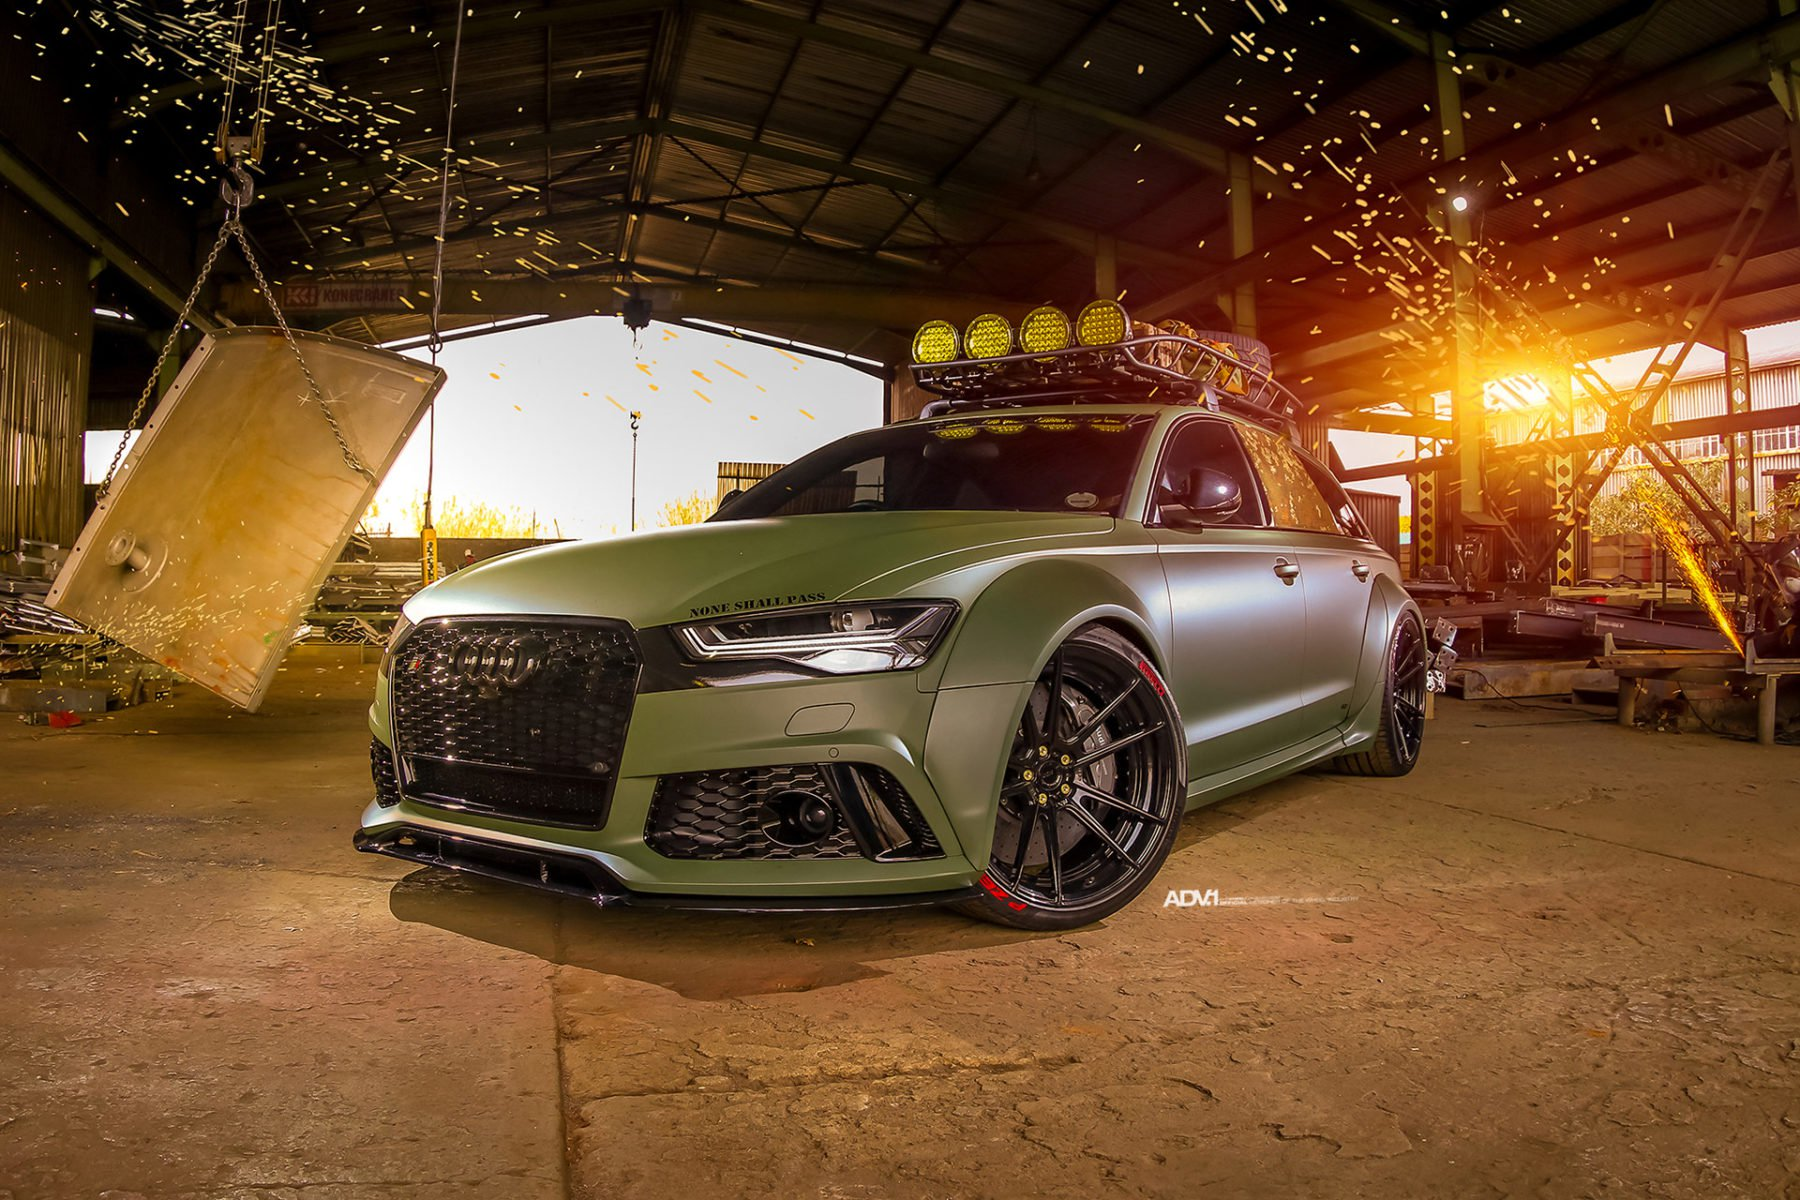 bf5a6557-audi-rs6-green-1